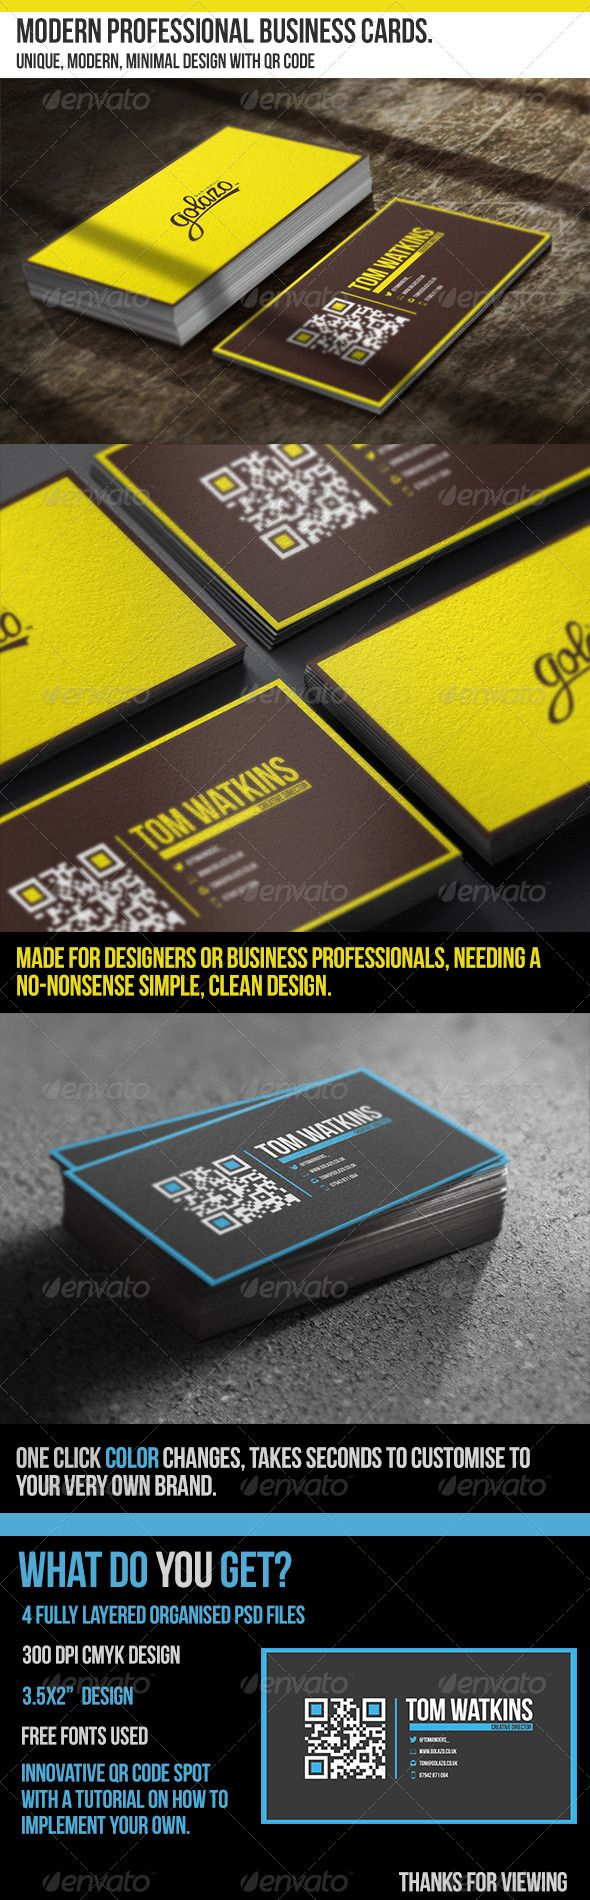 Modern Professional Business Cards - With QR Code - Corporate Business Cards